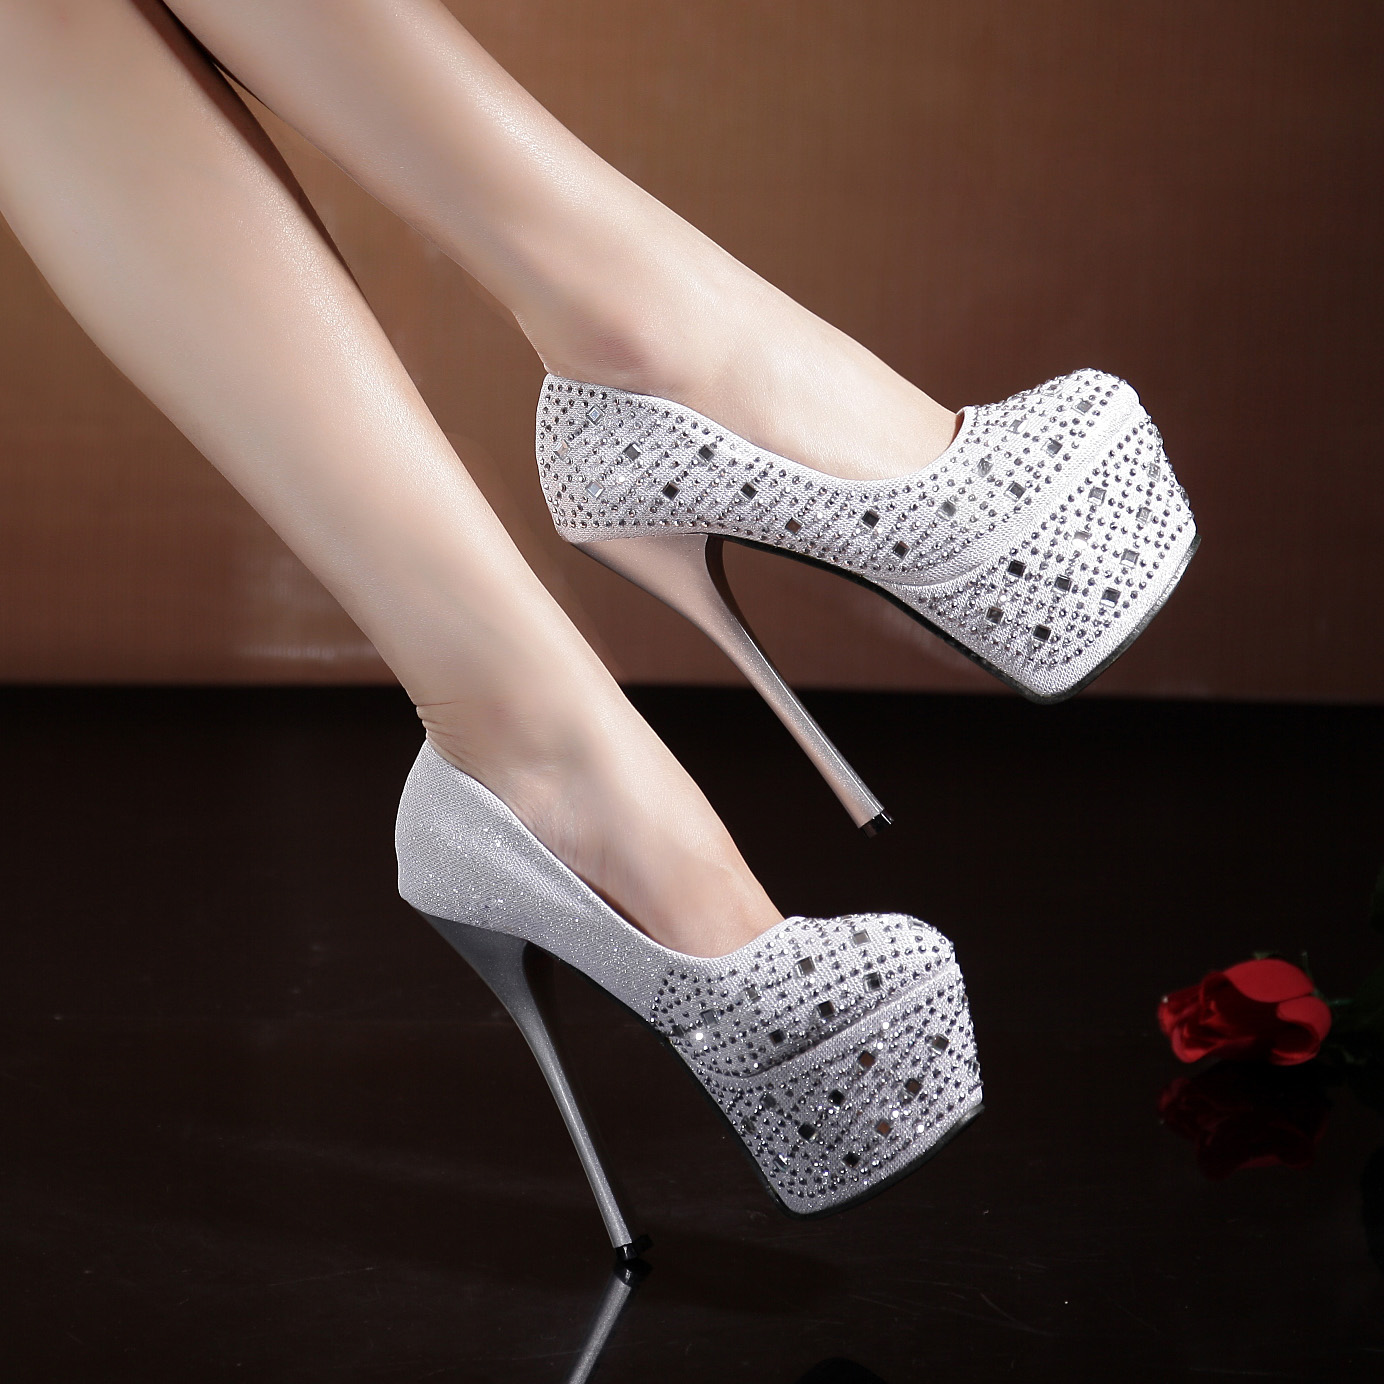 new 2014 white crystal ultra high heels rhinestone wedding dress bride formal dress banquet princess single shoes women's shoes-inPumps from Shoes on Aliexpress.com